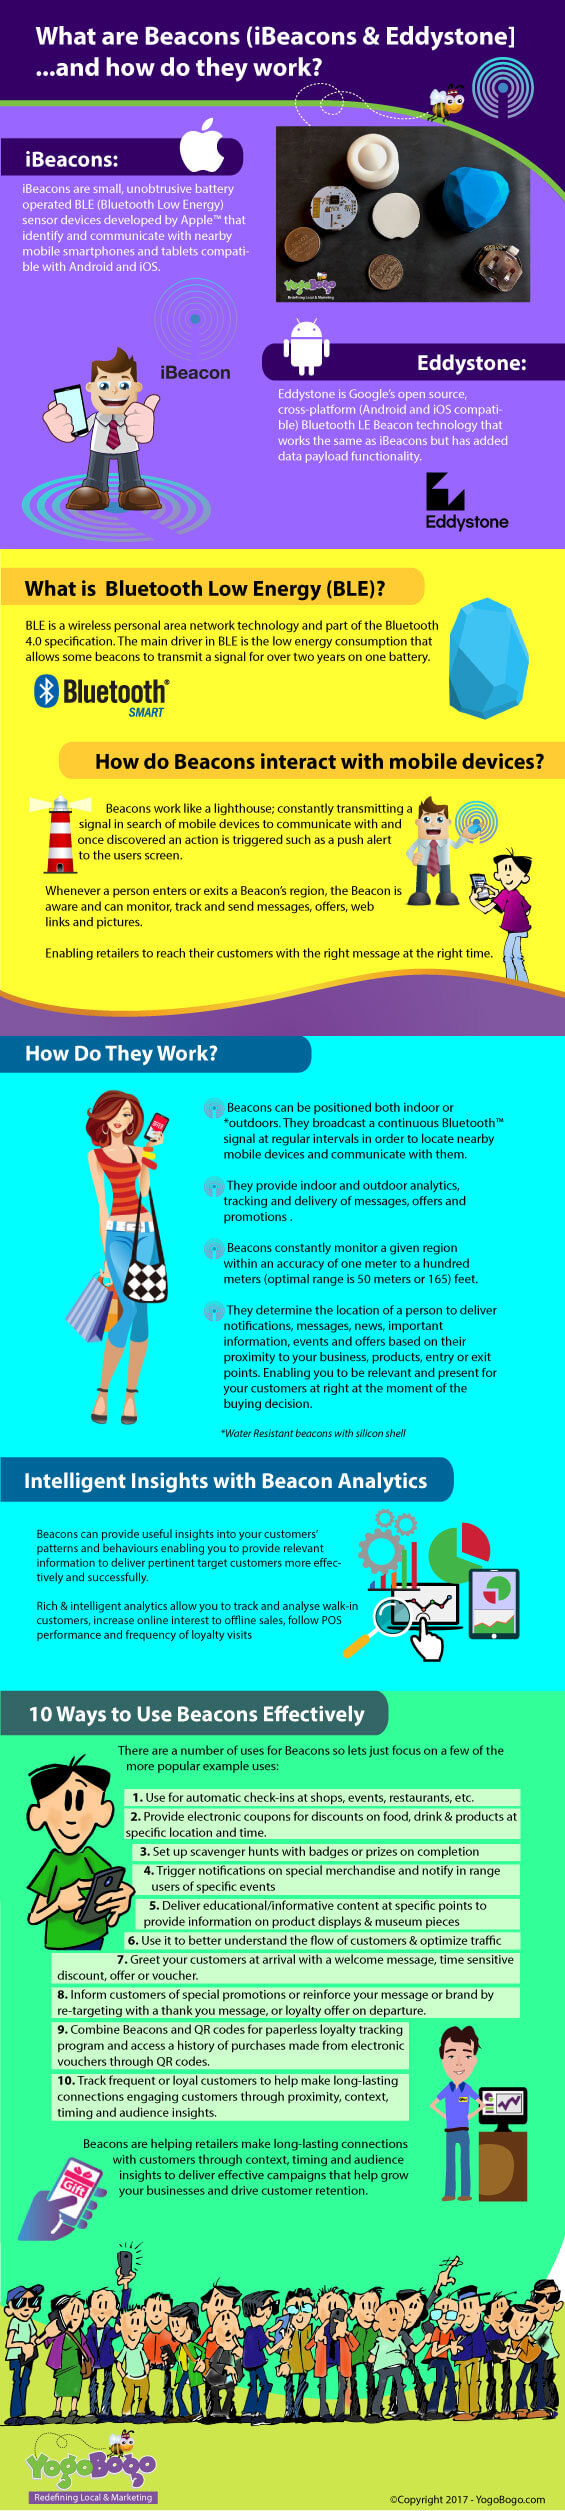 beacons - how they work - infographic